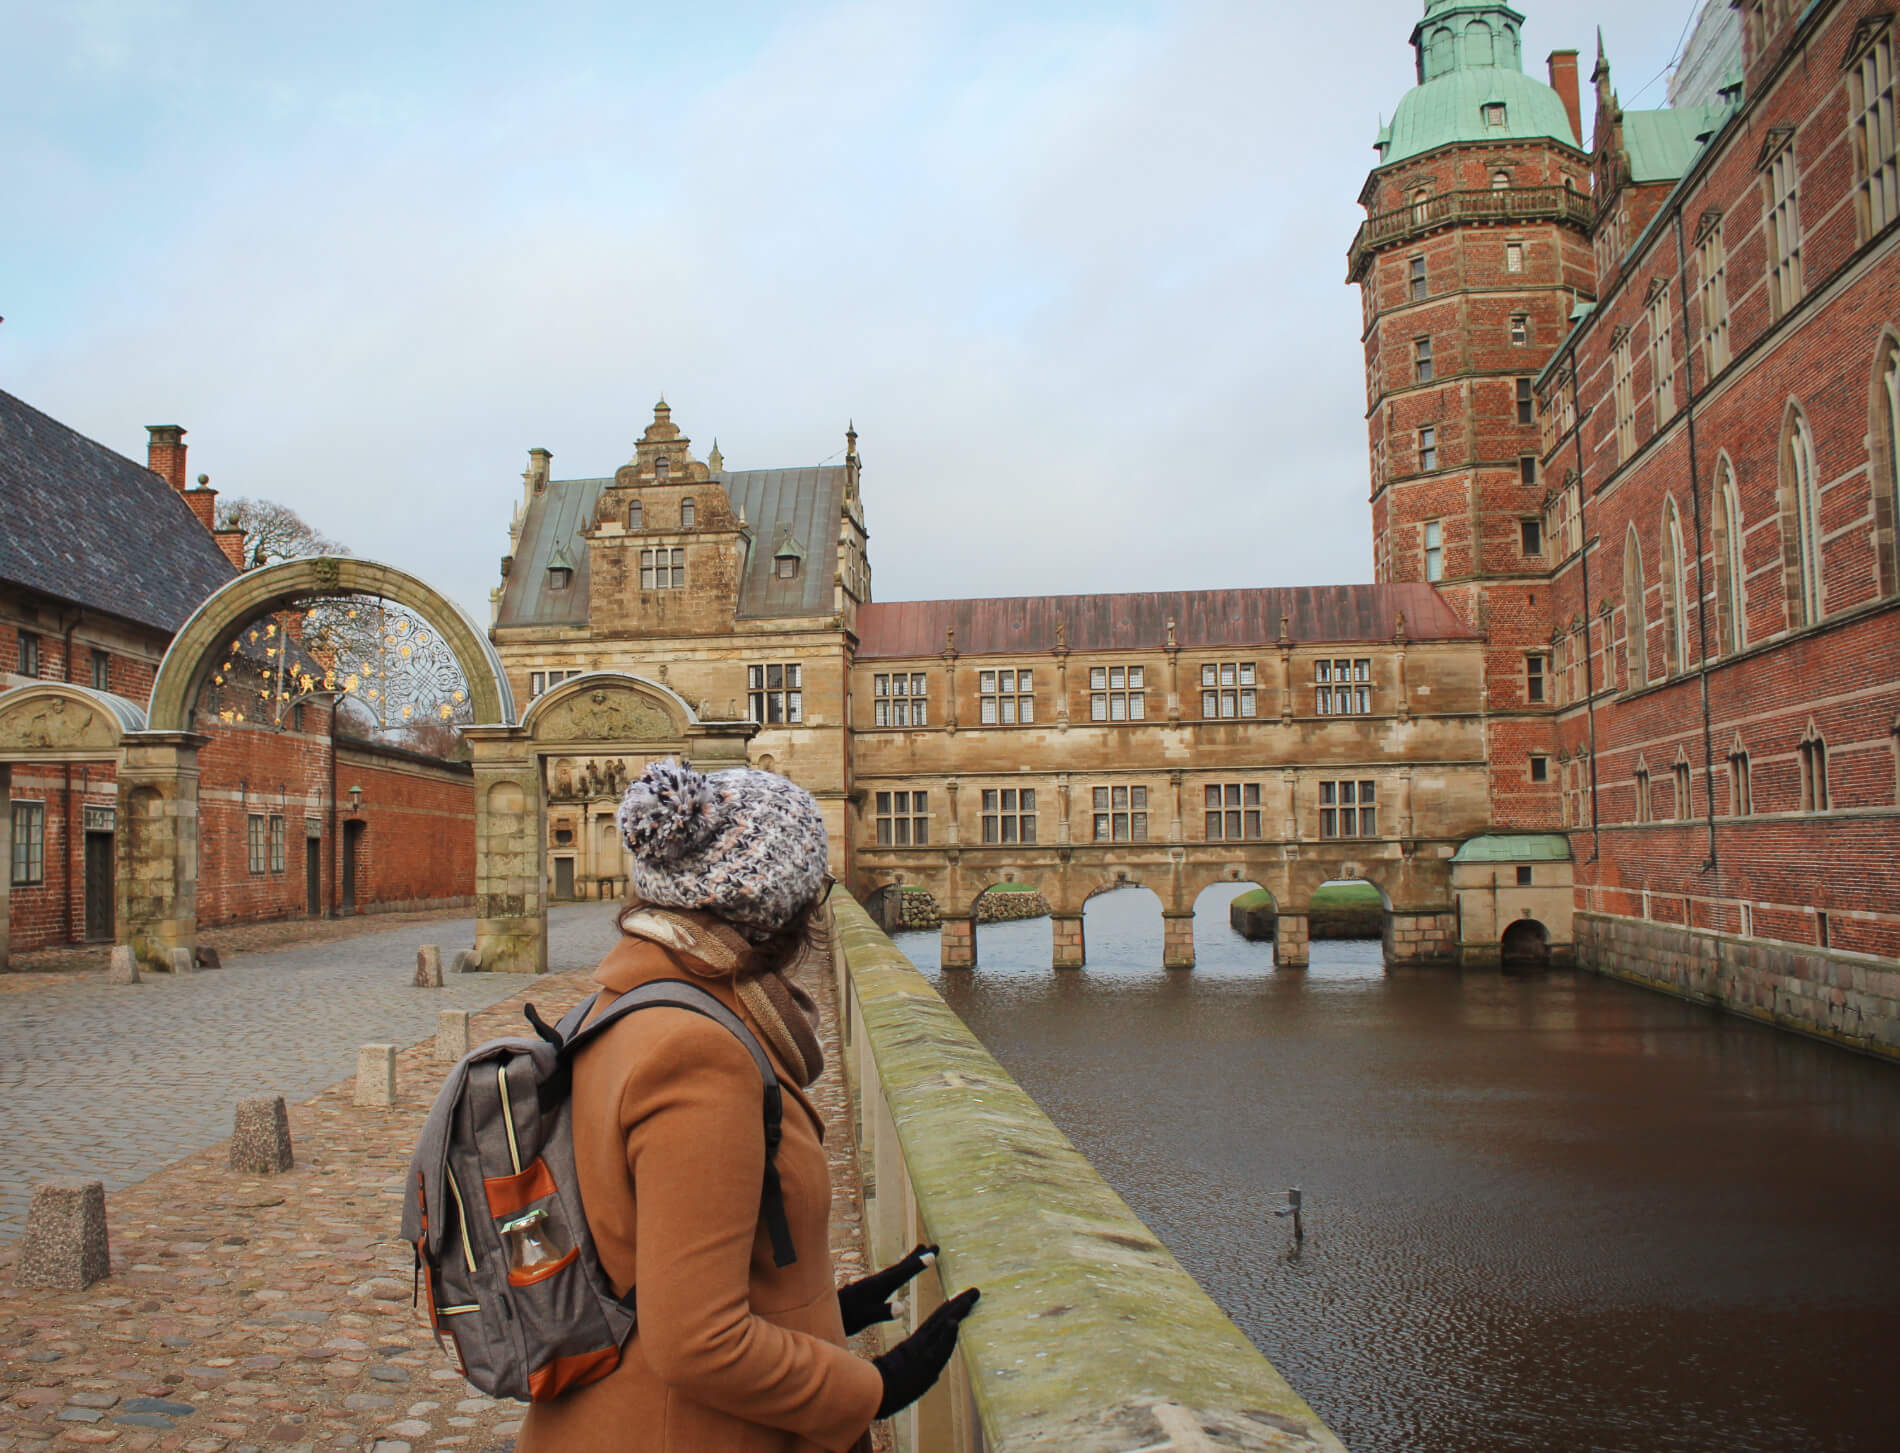 The museum of national history at frederiksborg castle copenhagen - Frederiksborg Castle Is A Fairytale Castle Near Copenhagen Denmark We Visited In The Winter